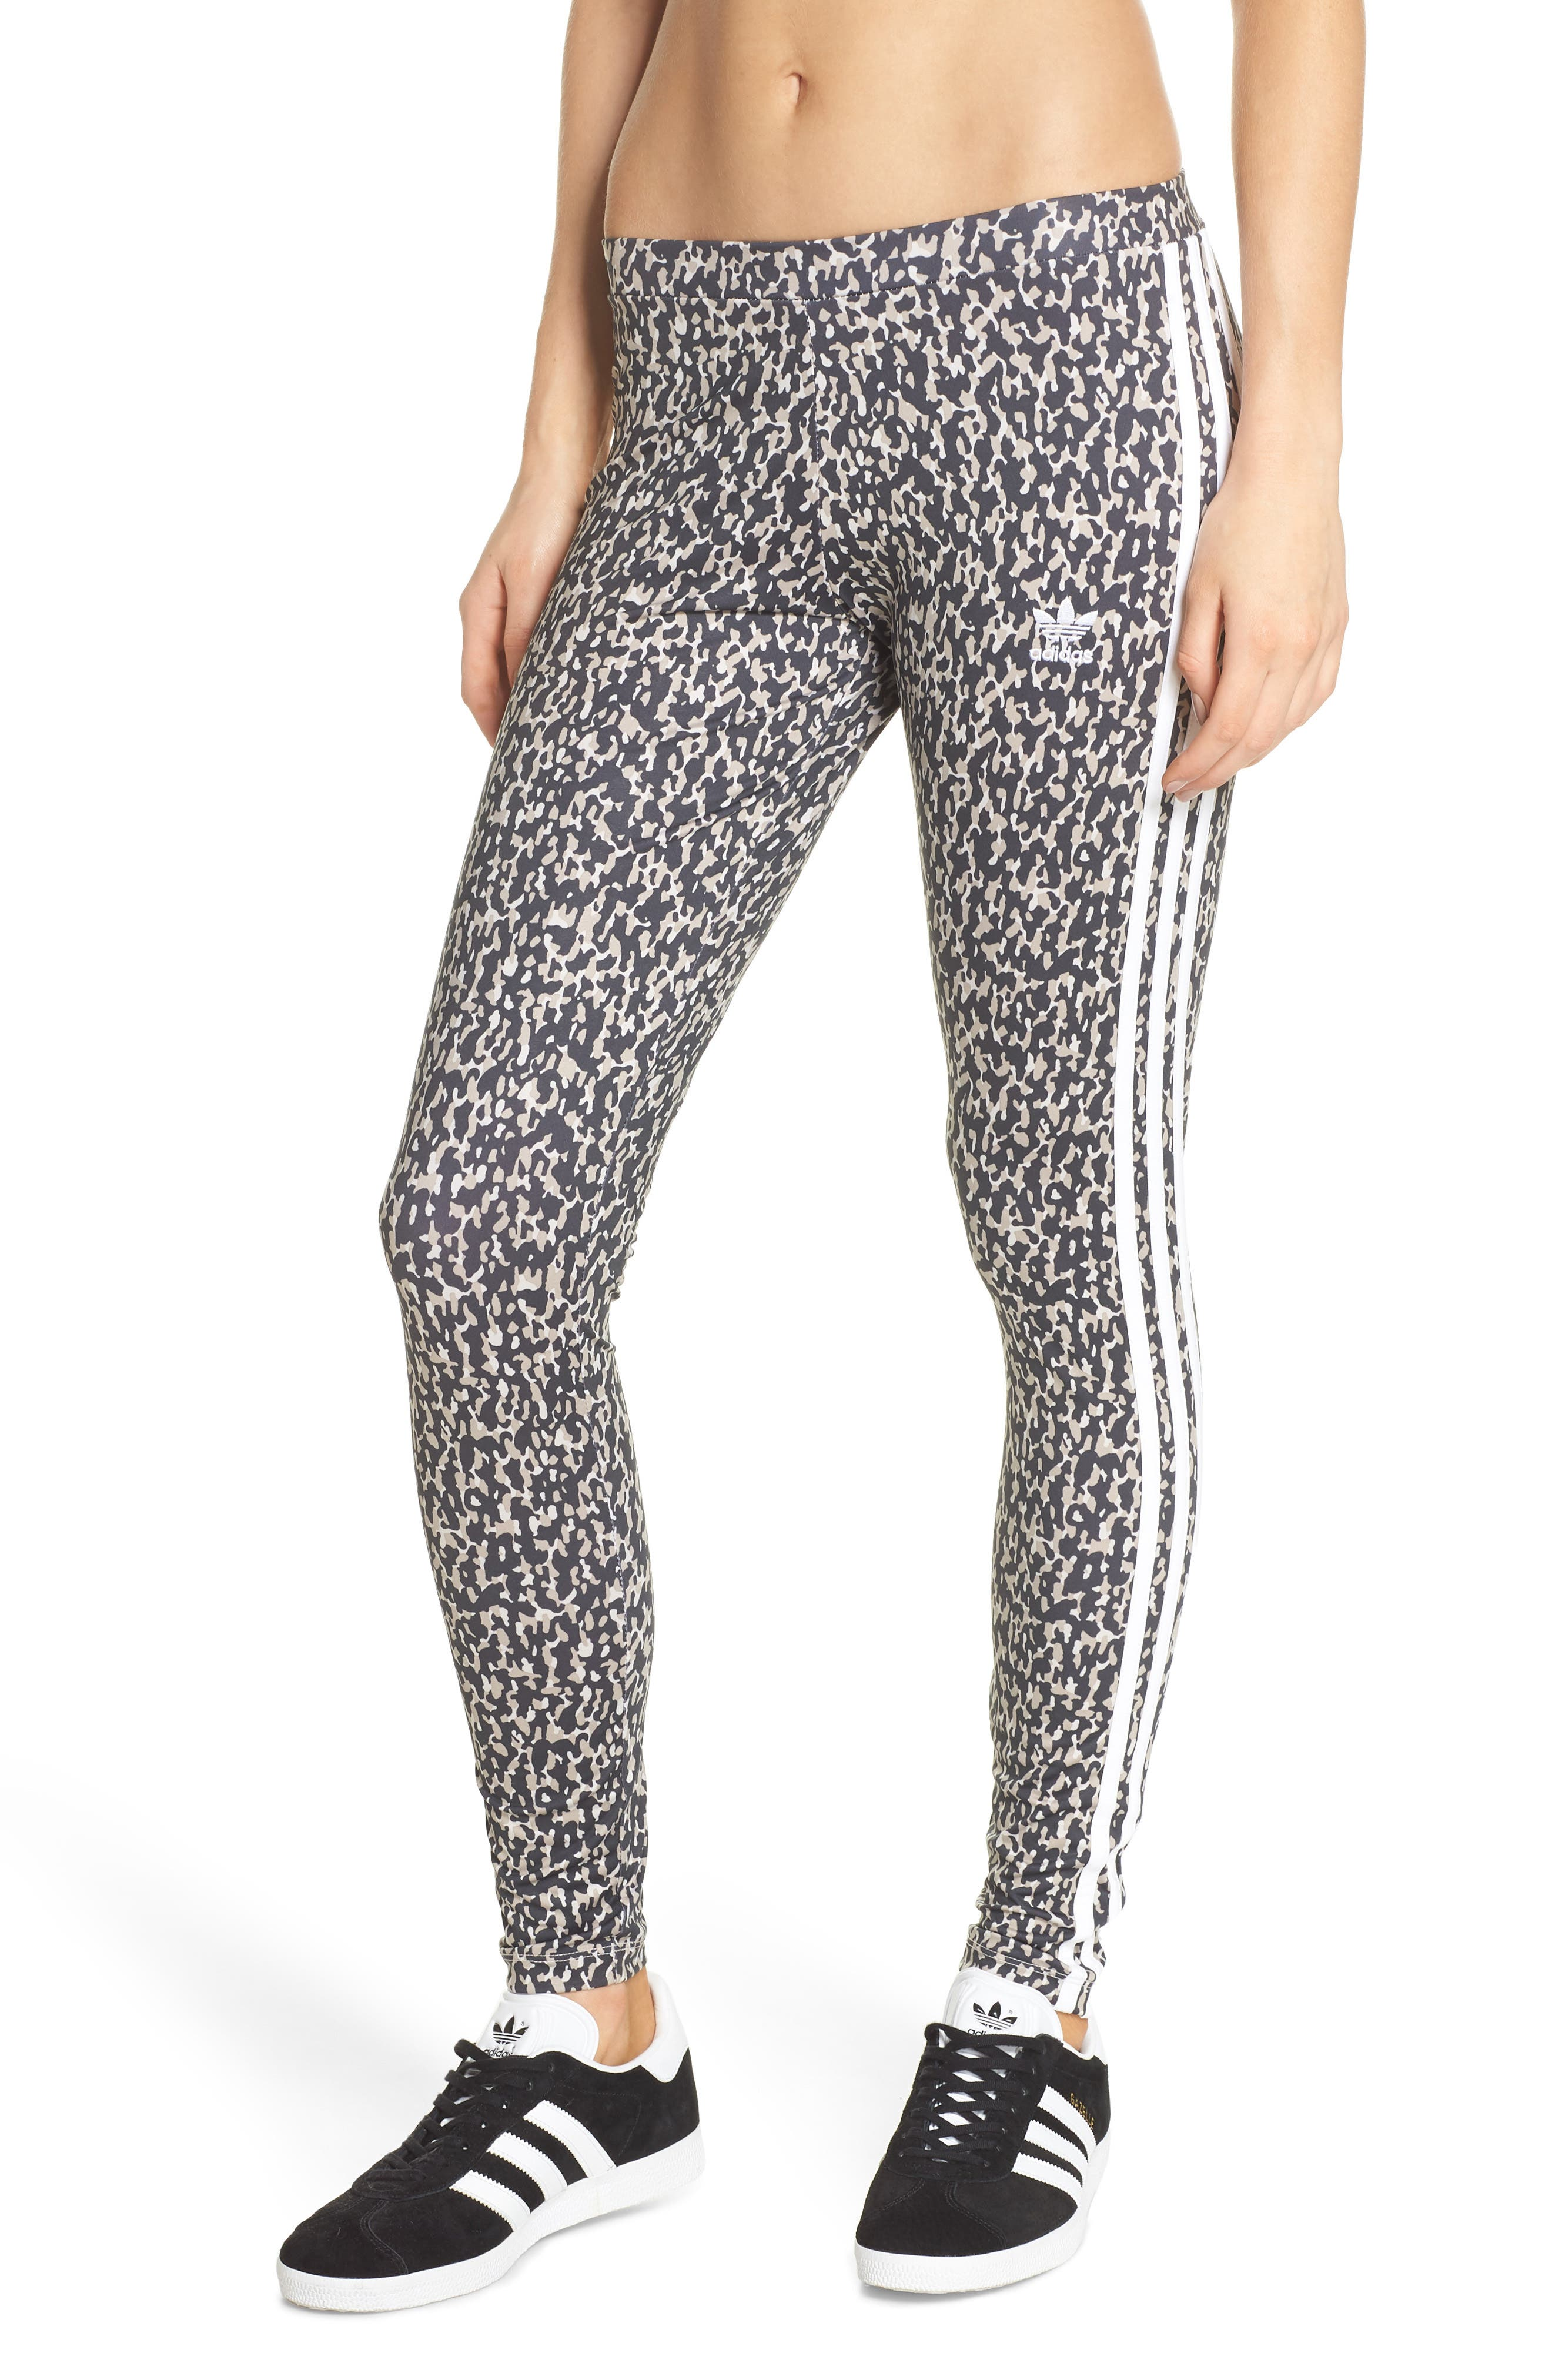 Leopard Camo Leggings,                             Main thumbnail 1, color,                             Leoflage Aop